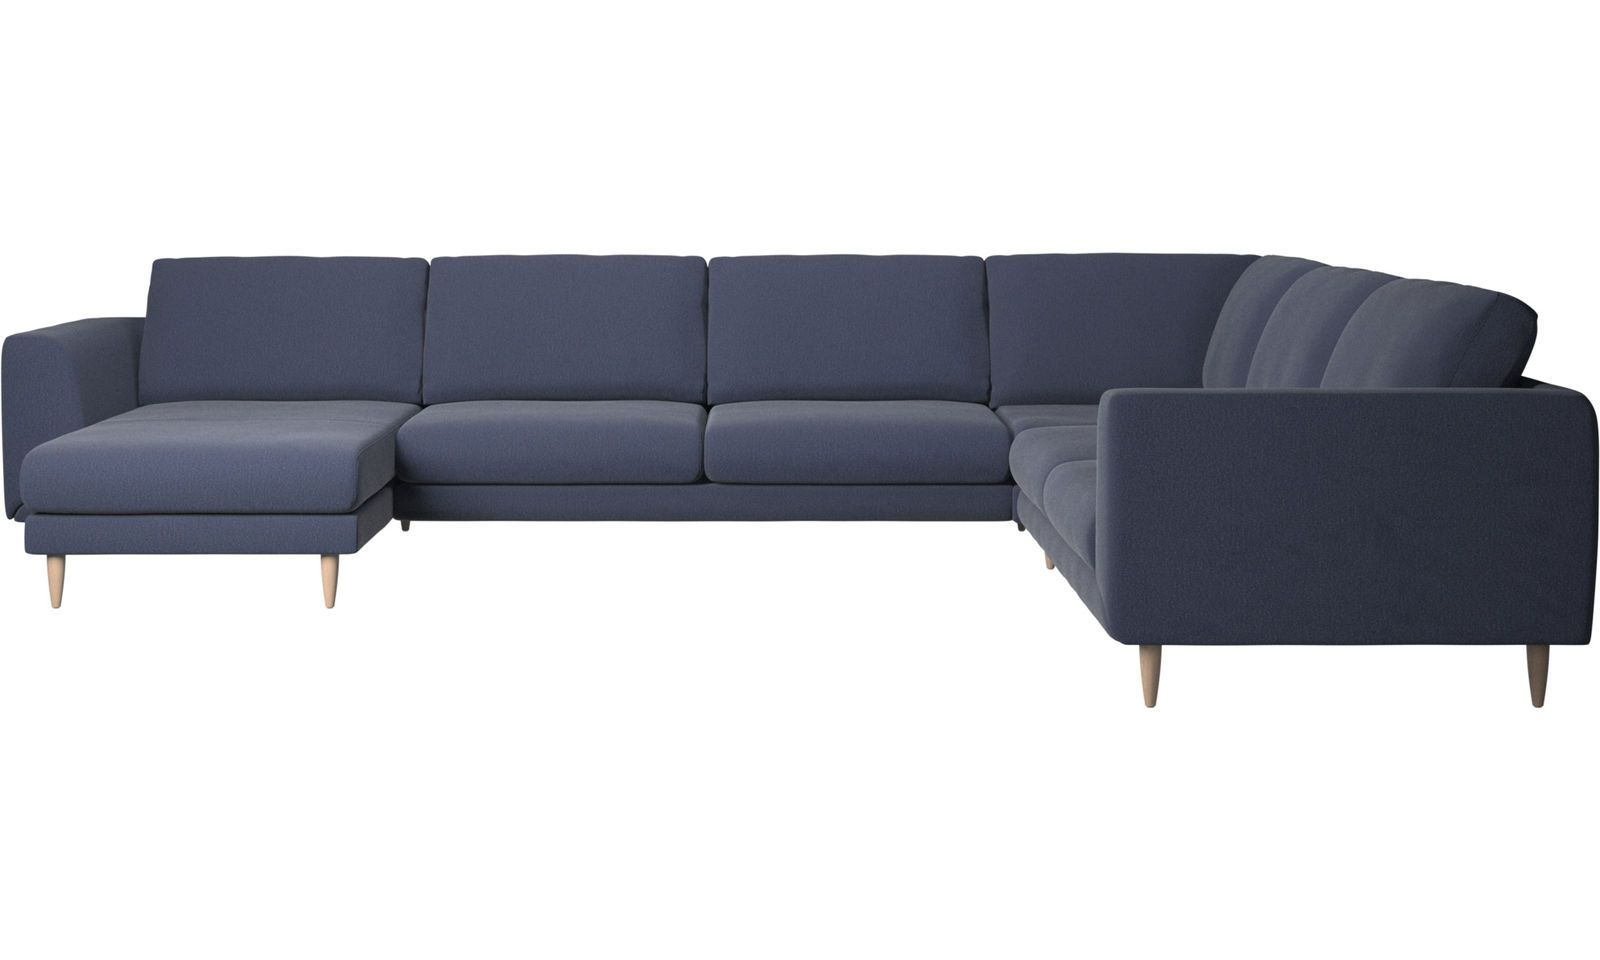 Strange Chaise Lounge Sofas Fargo Corner Sofa With Resting Unit Pabps2019 Chair Design Images Pabps2019Com